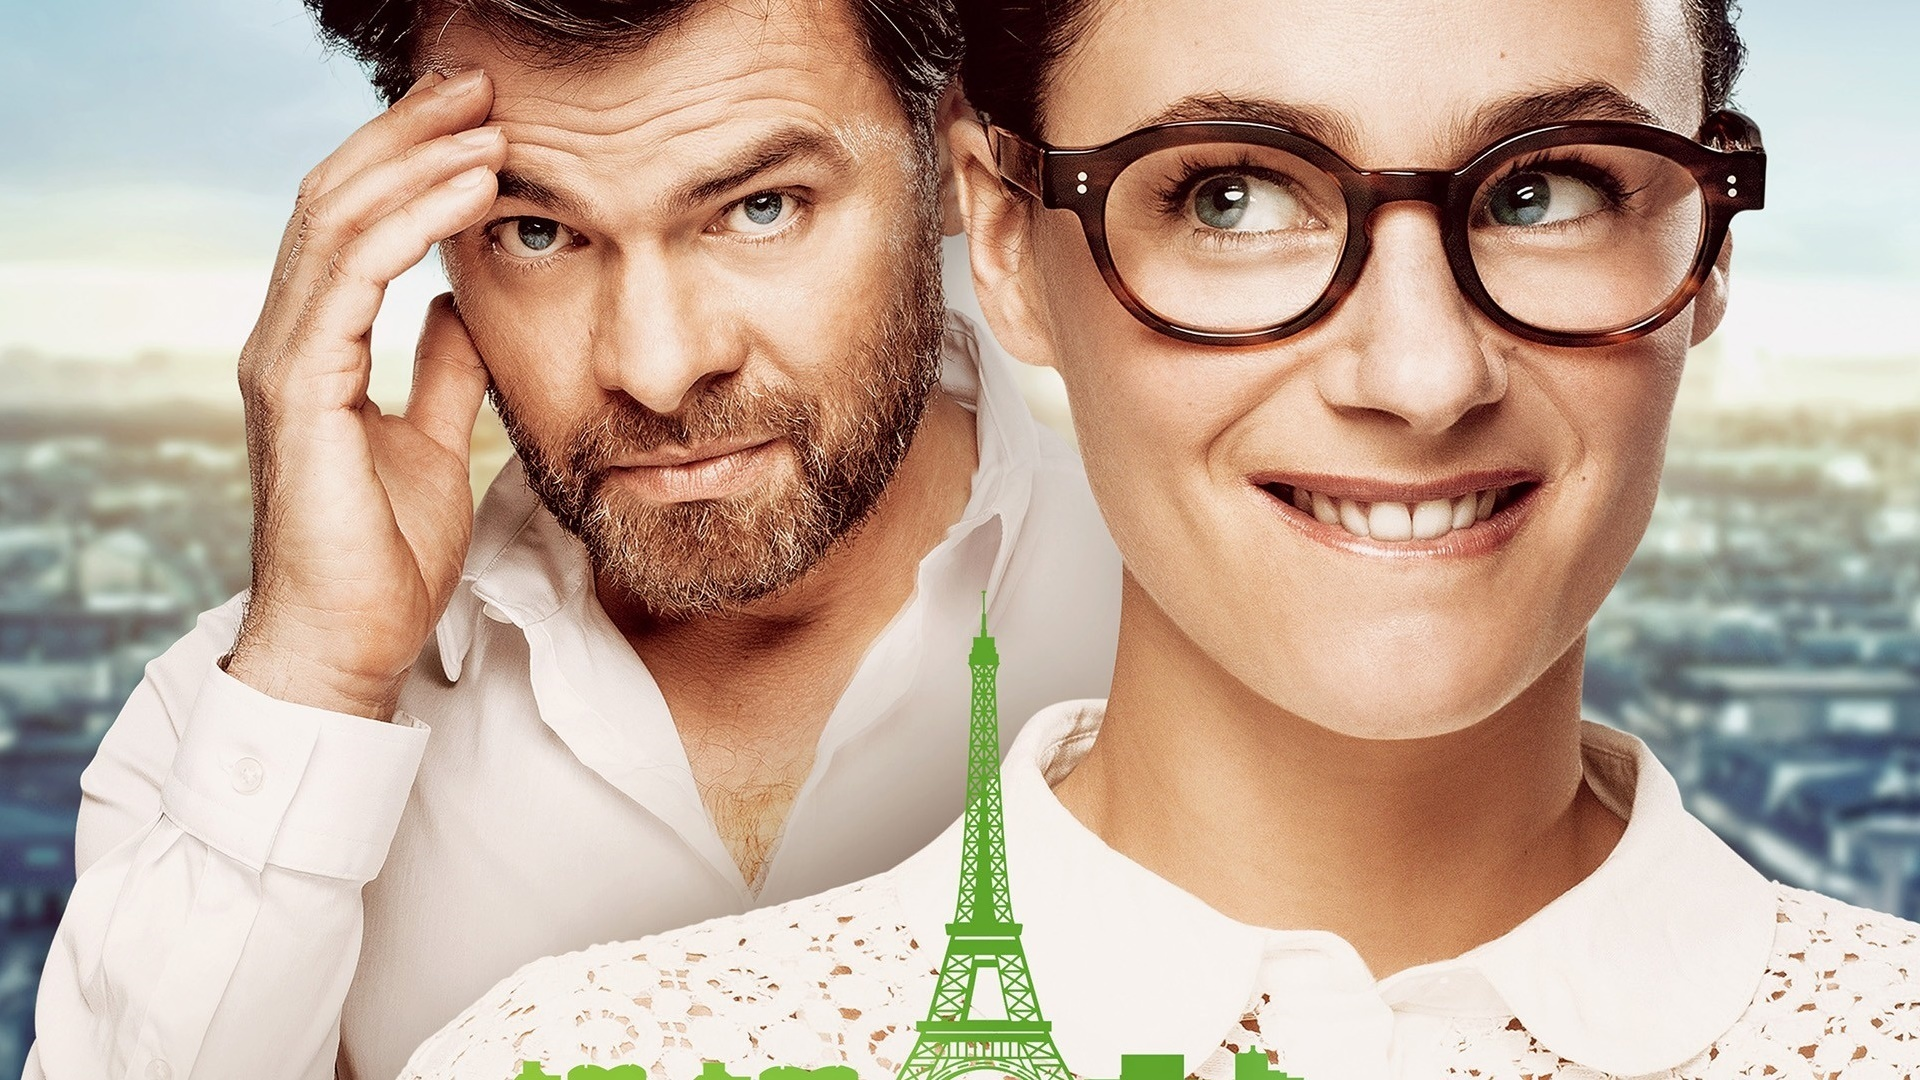 blind dating vf Blind dating (2006) streaming vf, blind dating (2006) streaming vk, regarder blind dating (2006) film en francais , blind dating (2006) film francais streaming gratuits, telecharger blind dating (2006) film francais.